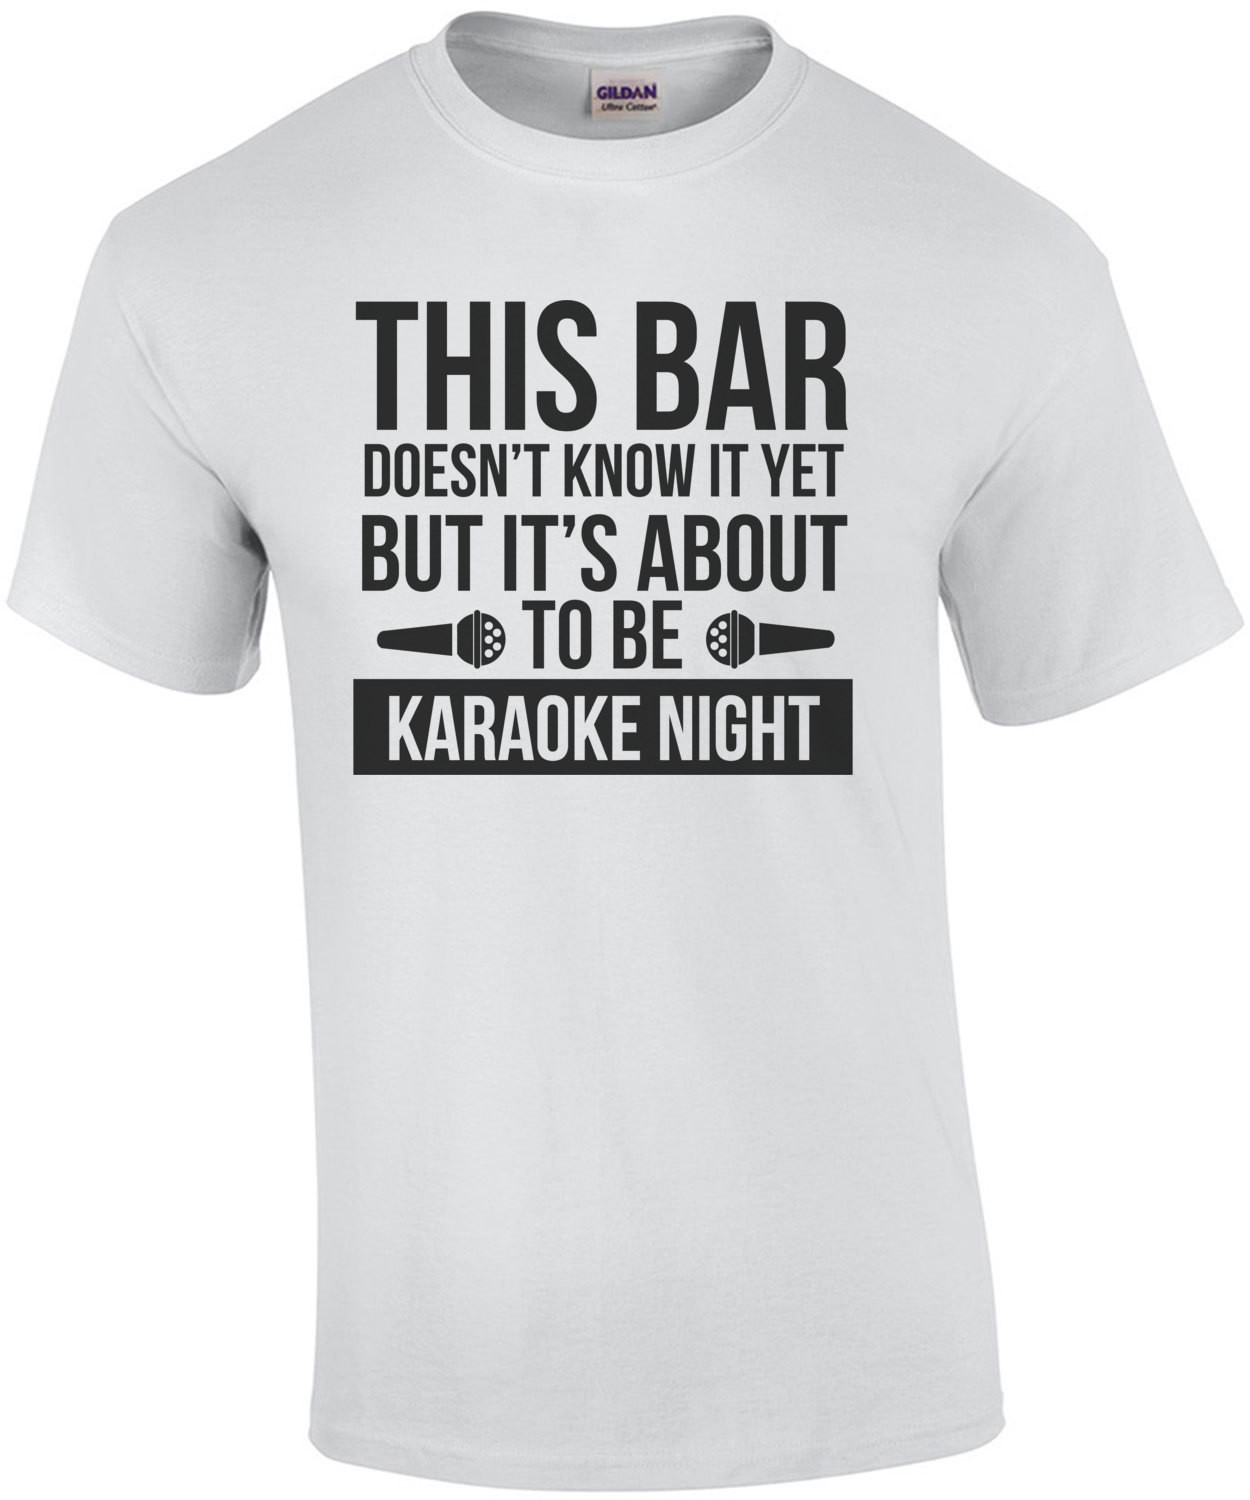 This bar doesn't know it yet but it's about to be karaoke night - funny t-shirt